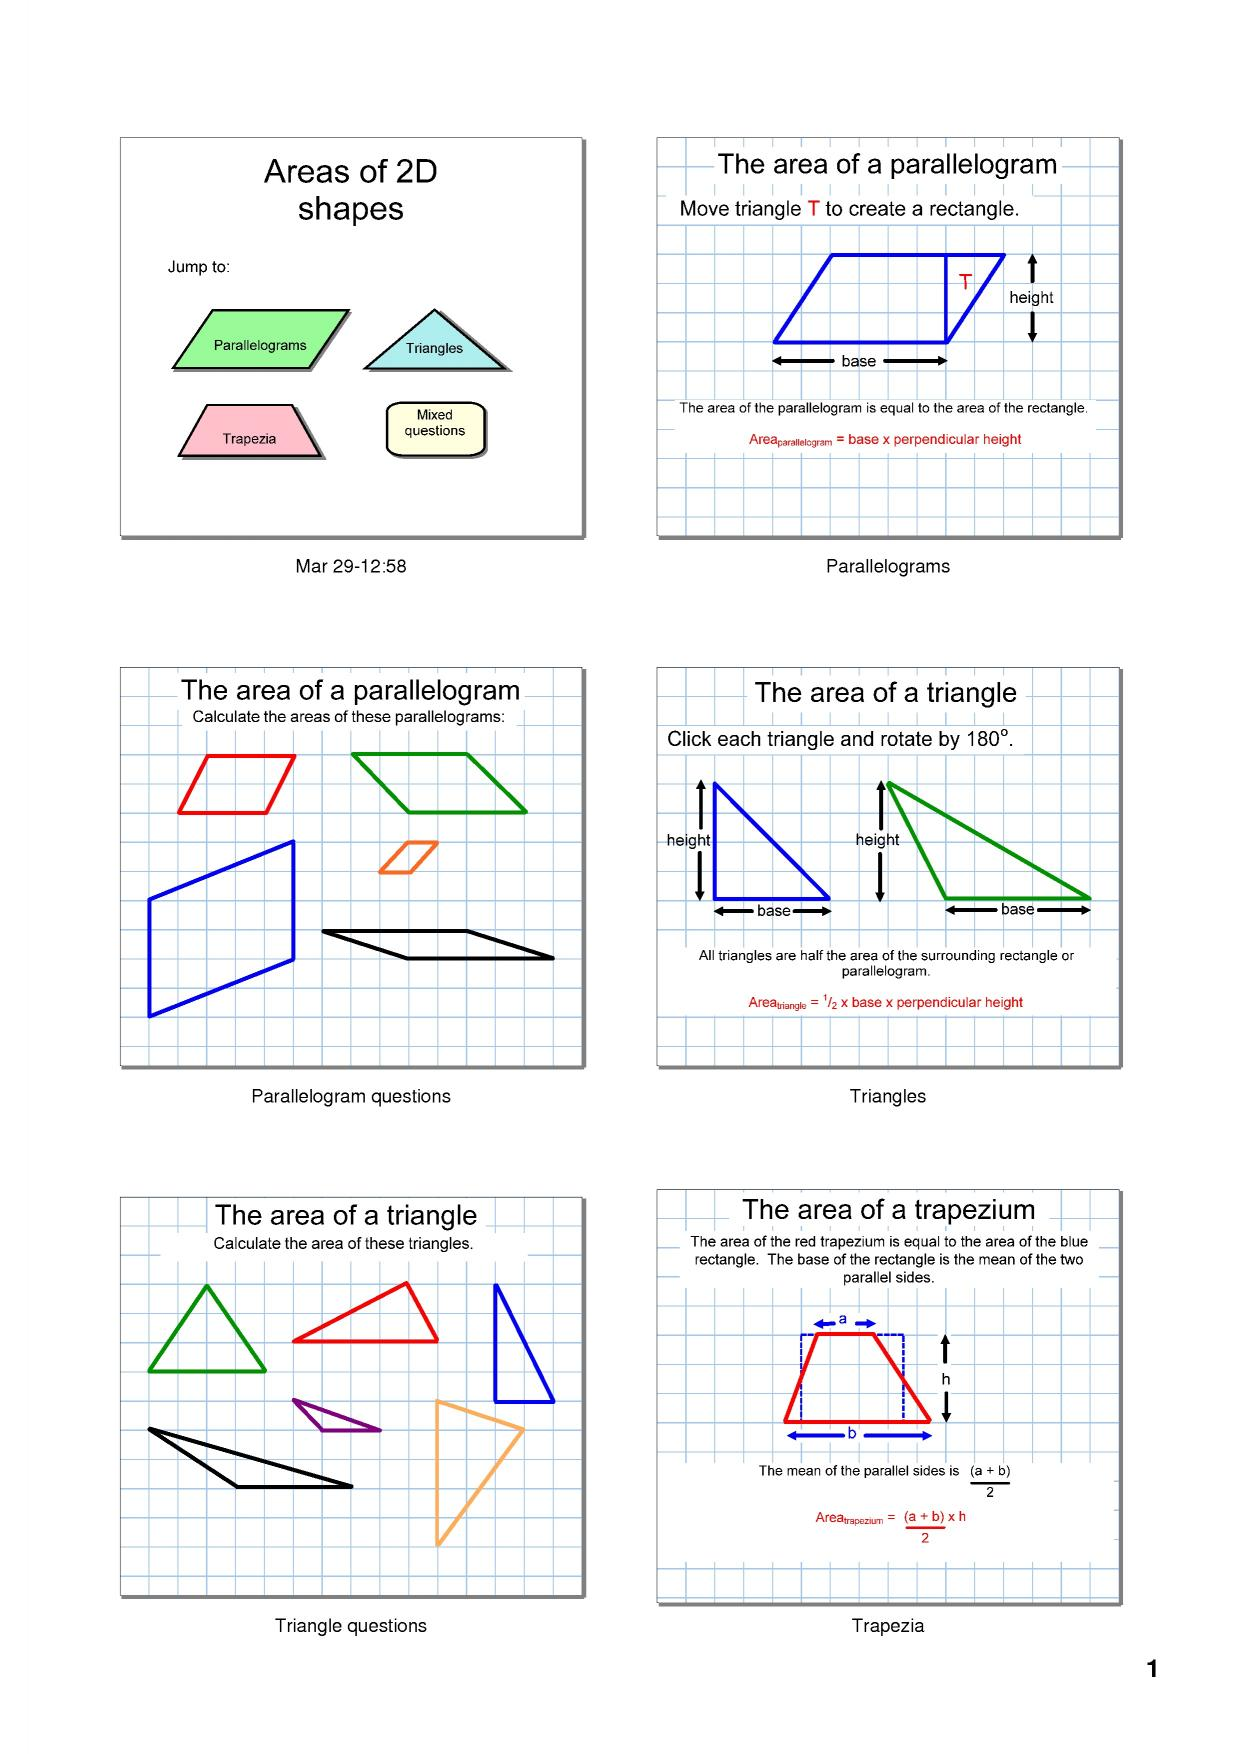 Worksheet Identify And Calculate The Area And Perimeter For Each Triangle Worksheet Fun